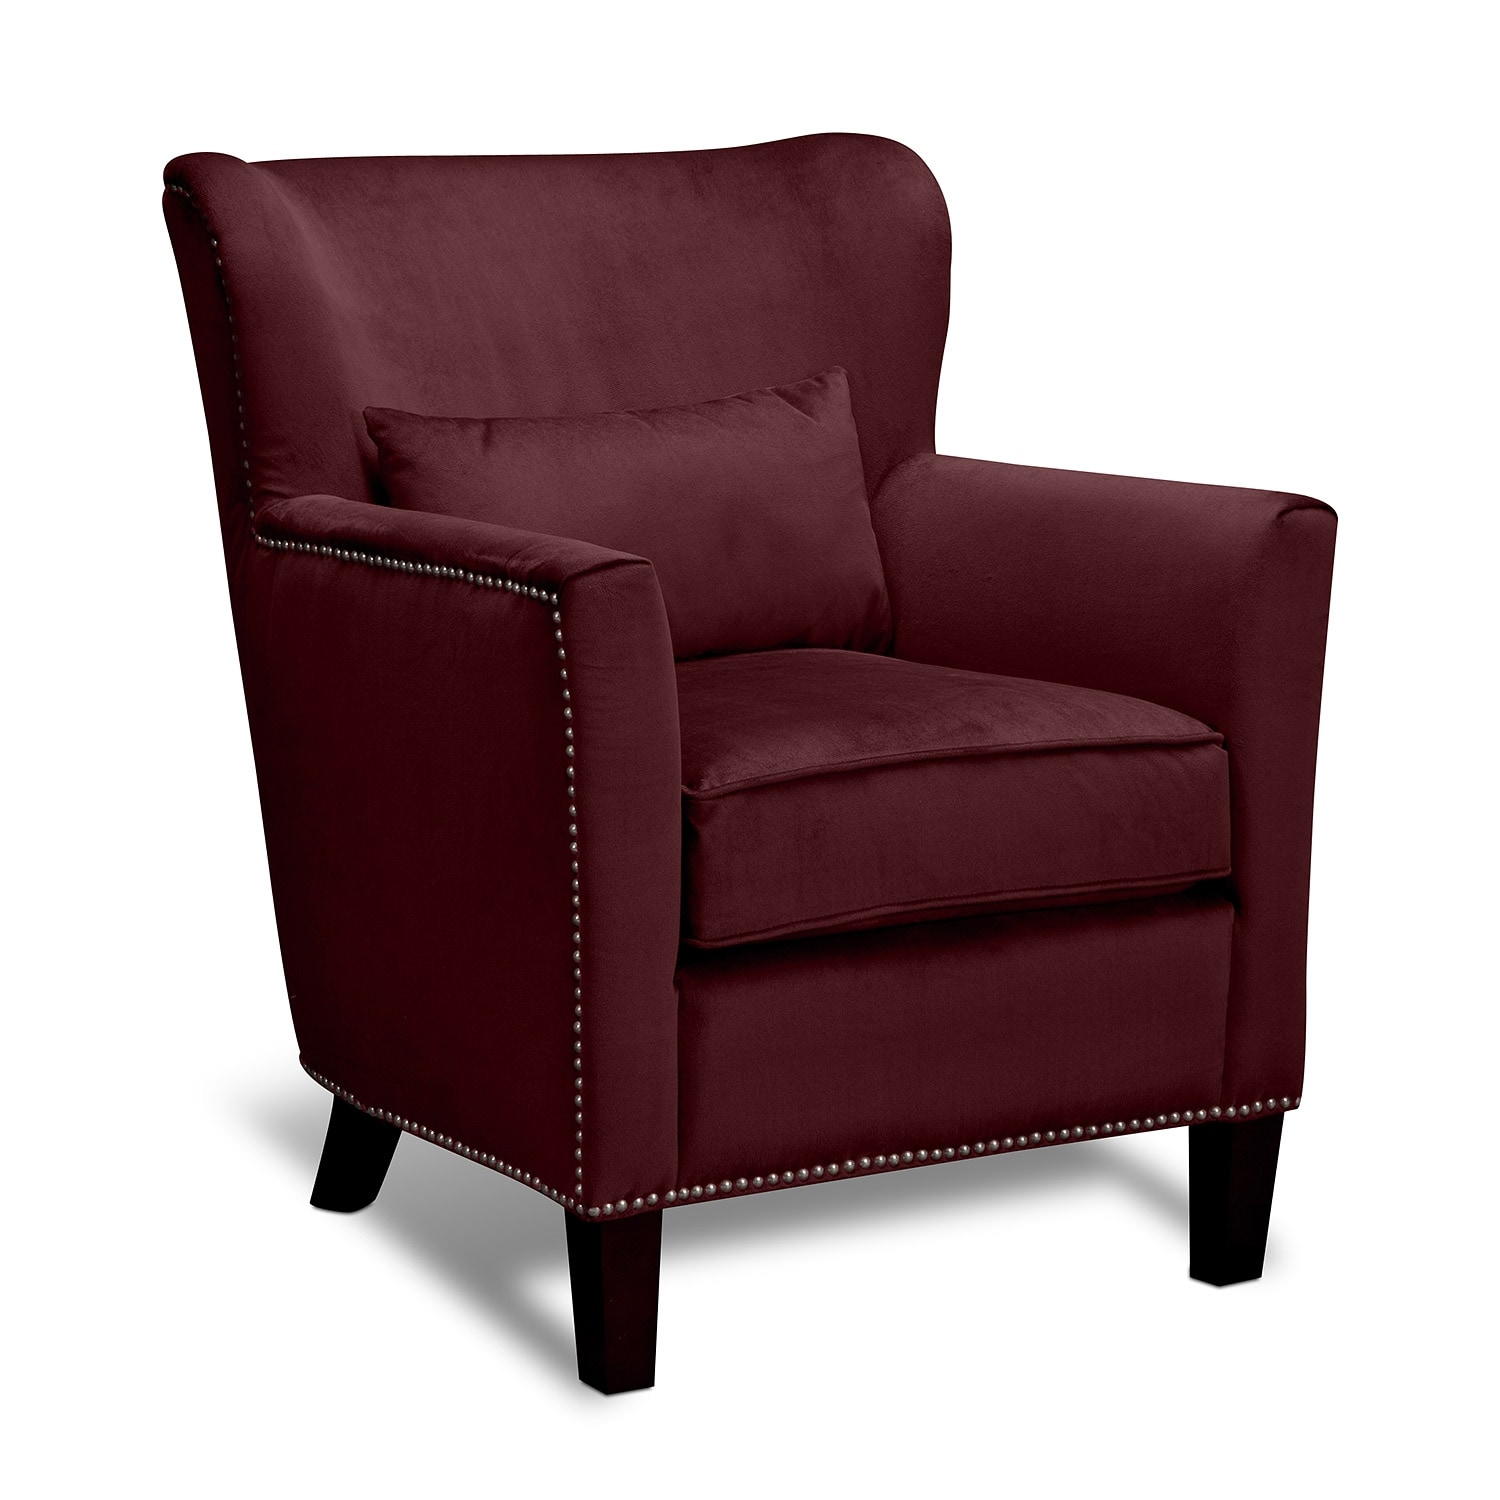 Living Room Furniture - Miata Accent Chair